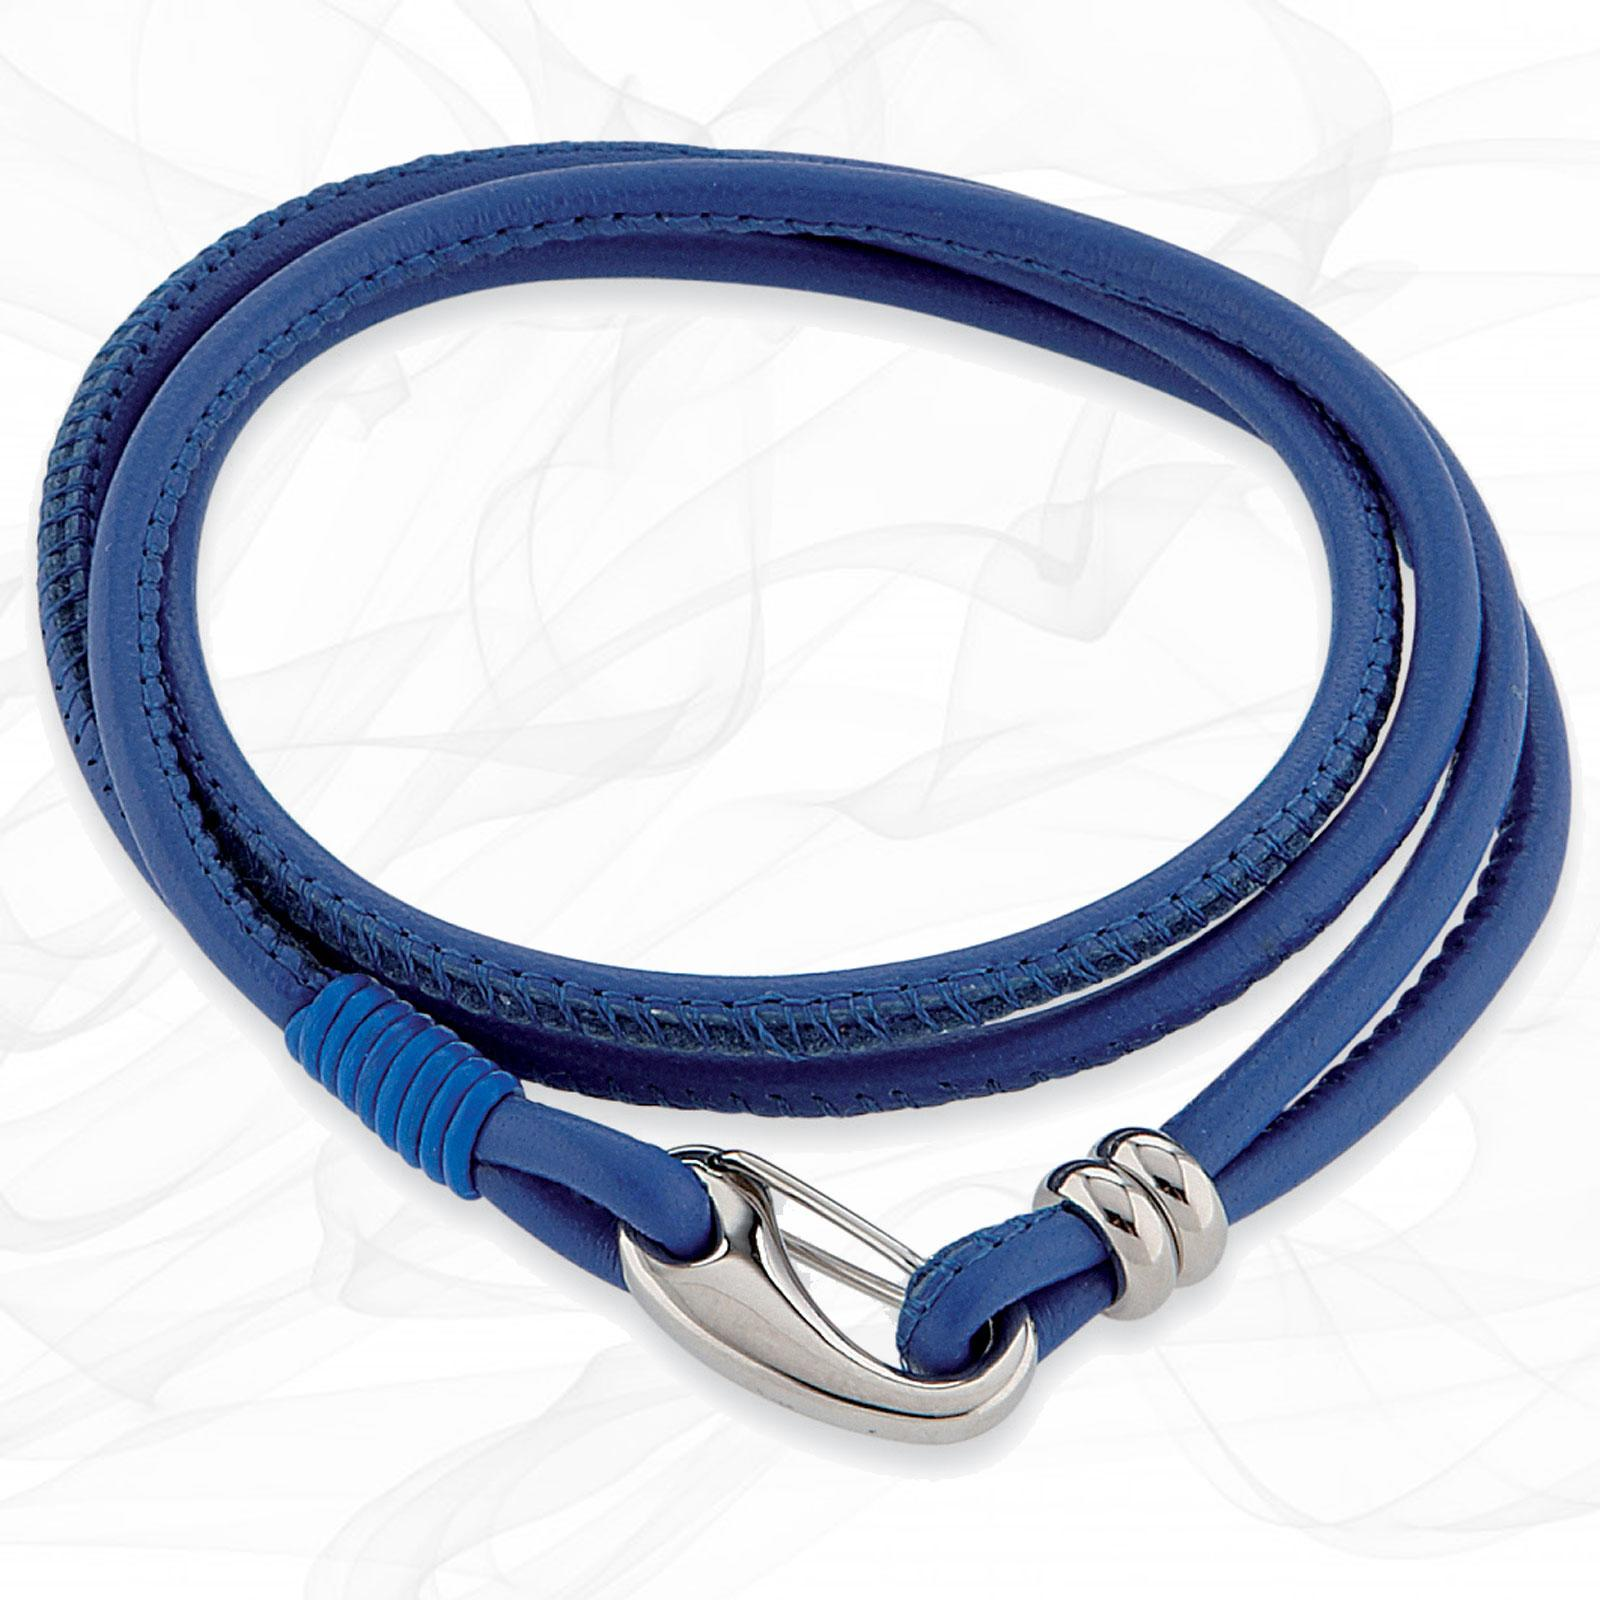 Simple smooth Blue 3mm Nappa quad wrap Leather Bracelet for Women